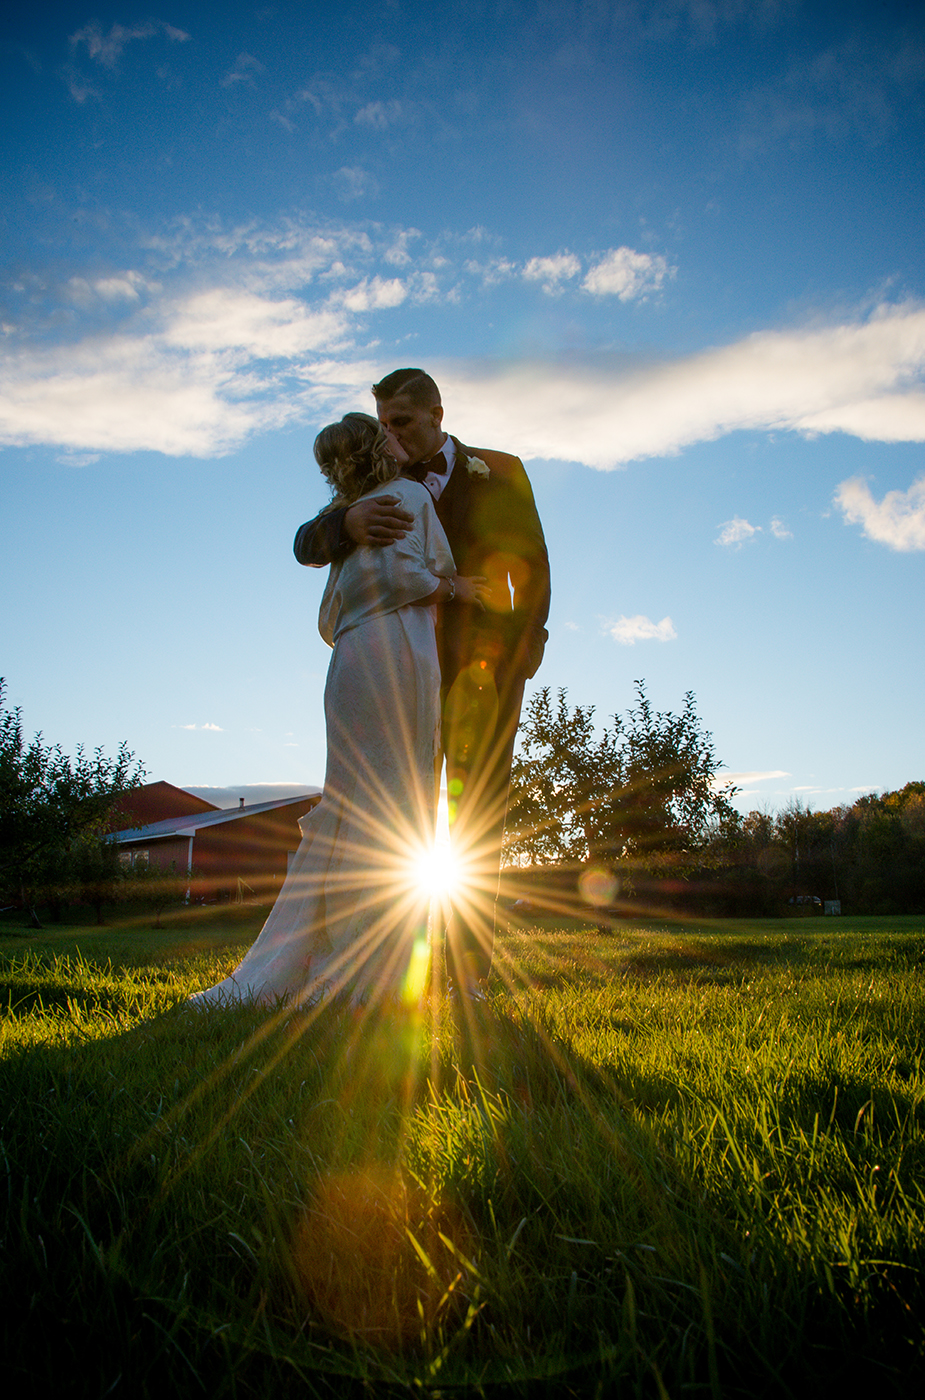 All Occasions Photography Albany NY - Wedding Photography Bride & Groom at Sunset